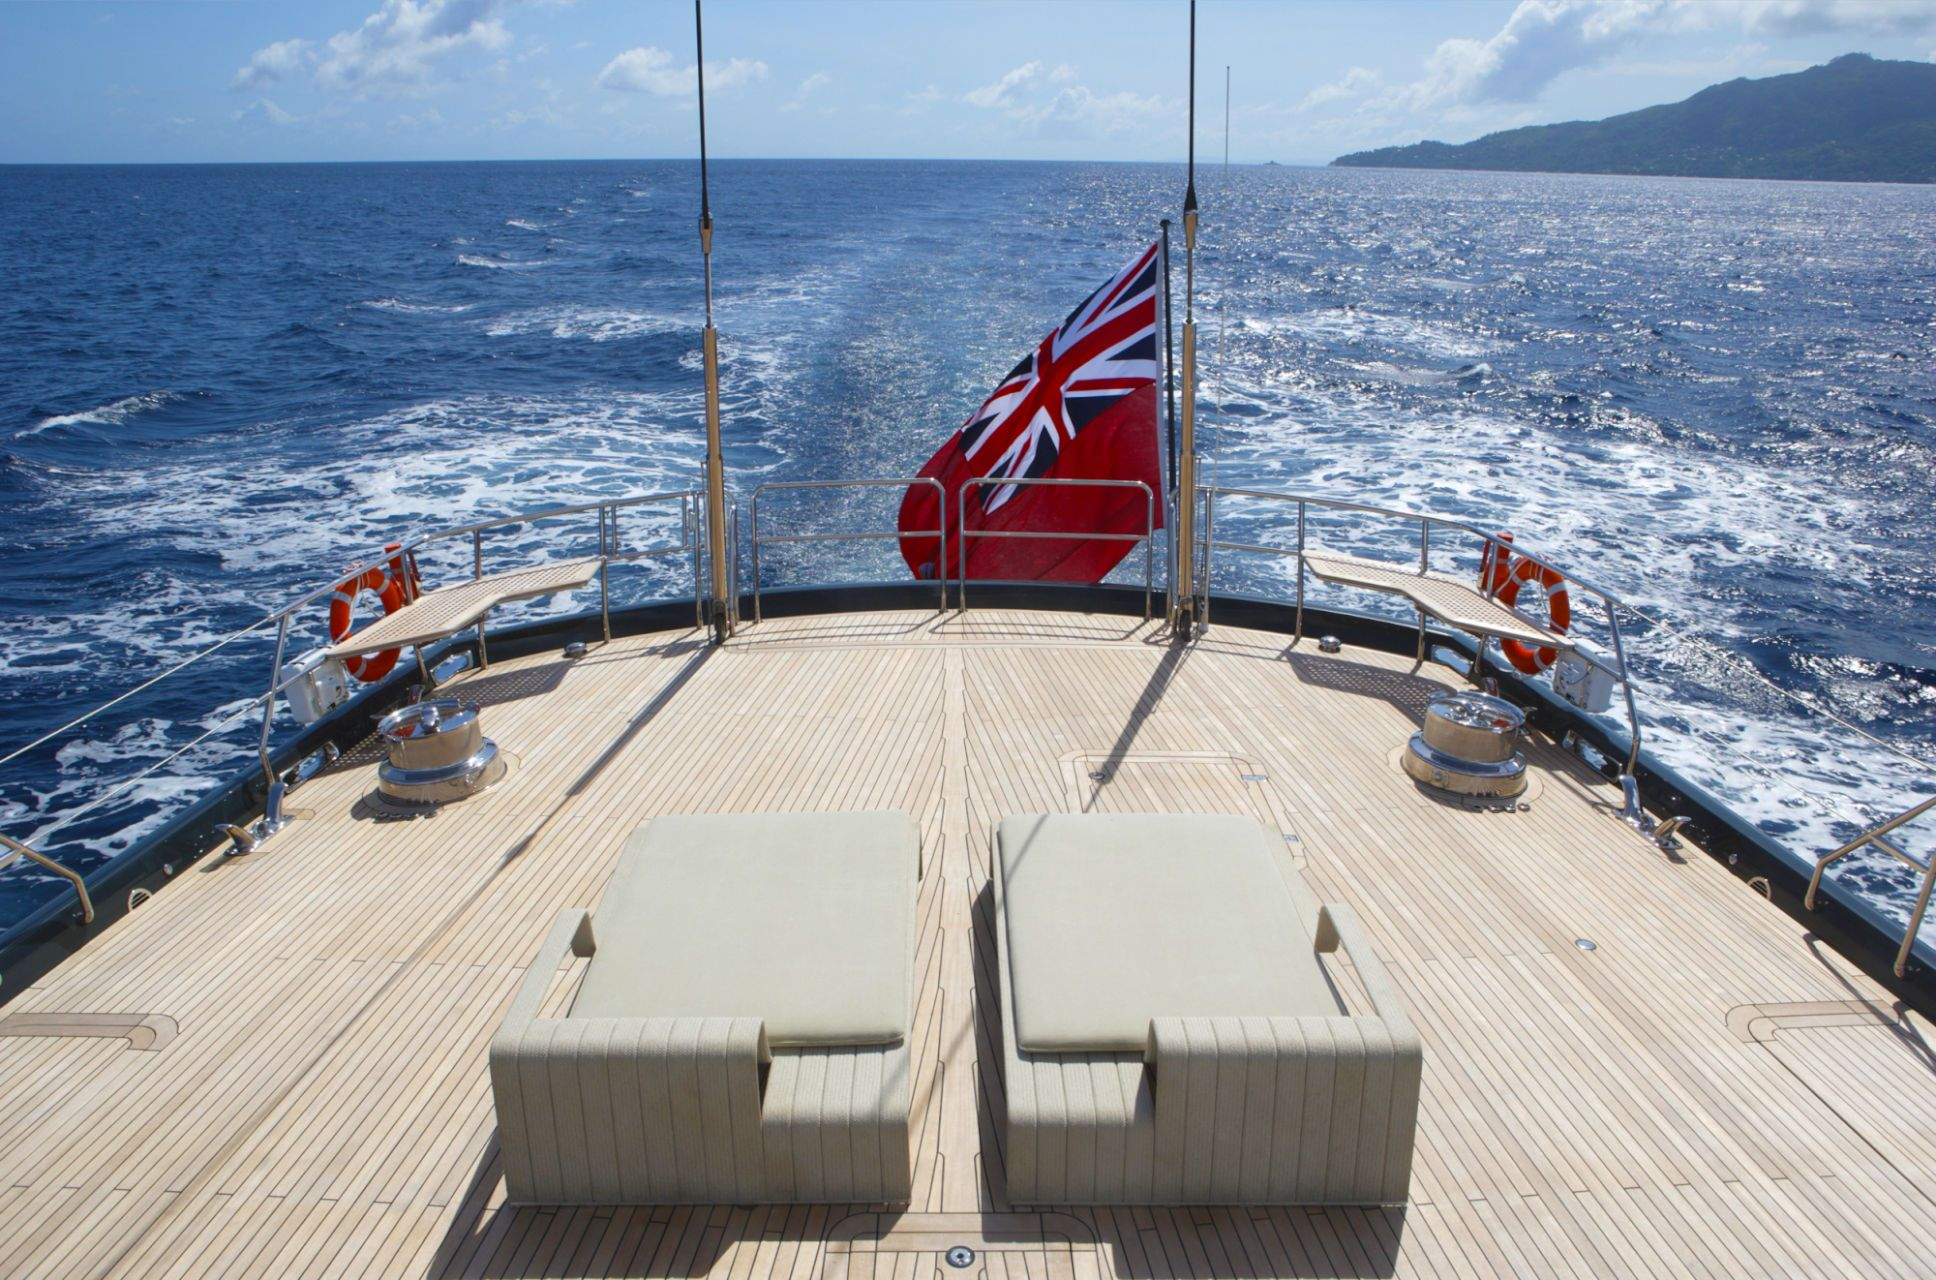 Sailing Yacht RED DRAGON By Dubois - Aft With Flag